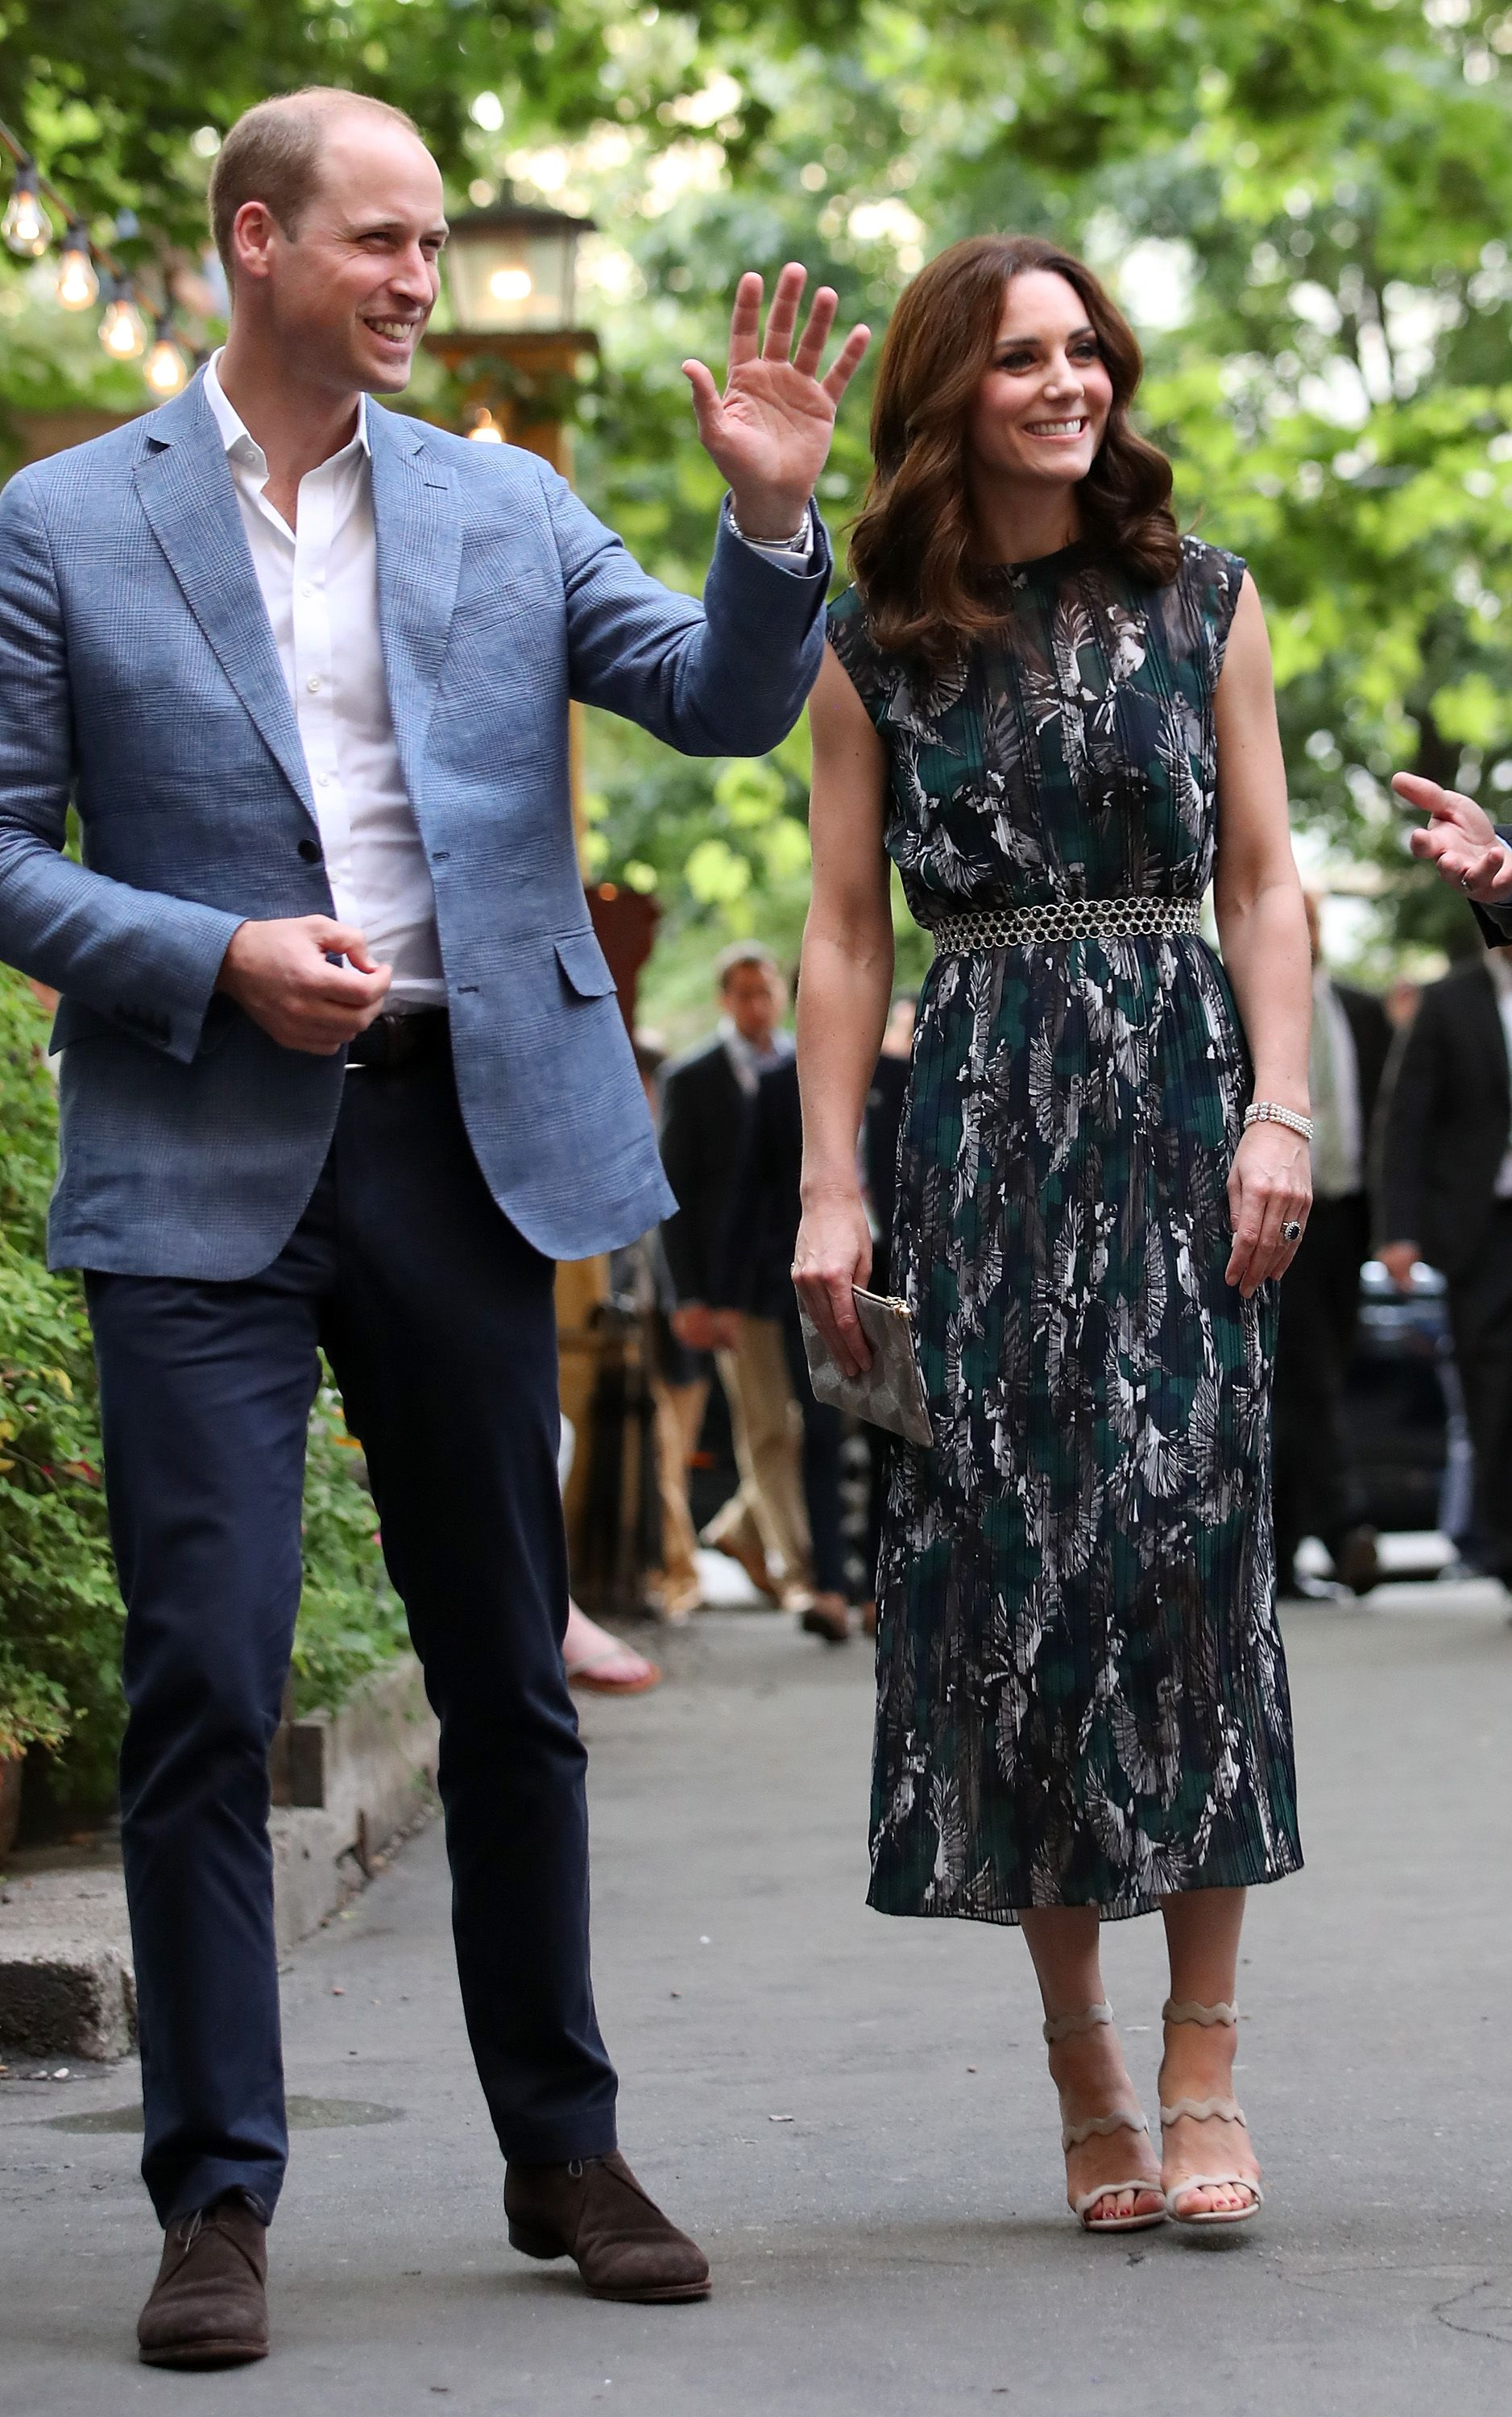 00b9d5982b7 Kate Middleton Best Fashion Moments - Kate Middleton Memorable Looks